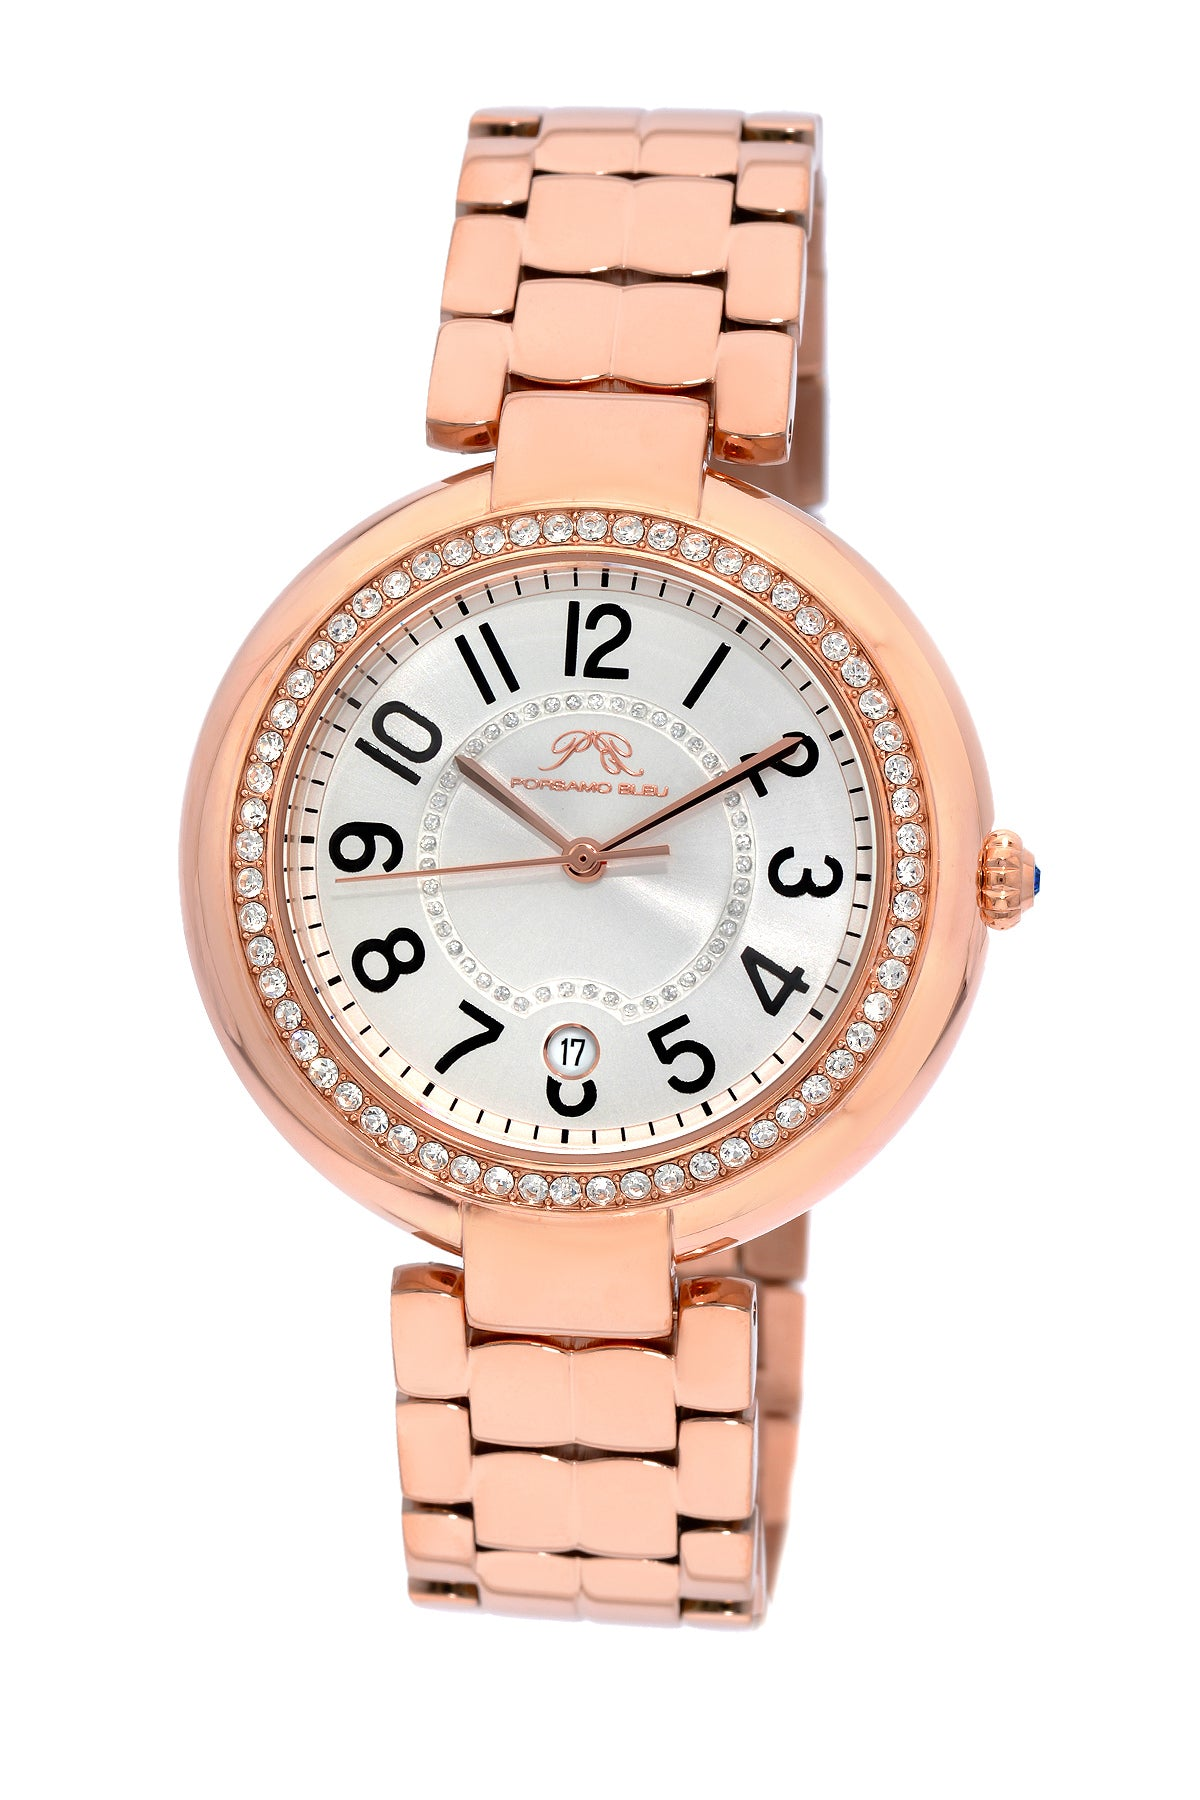 Porsamo Bleu Sofia luxury women's stainless steel watch, rose, white 951CSOS